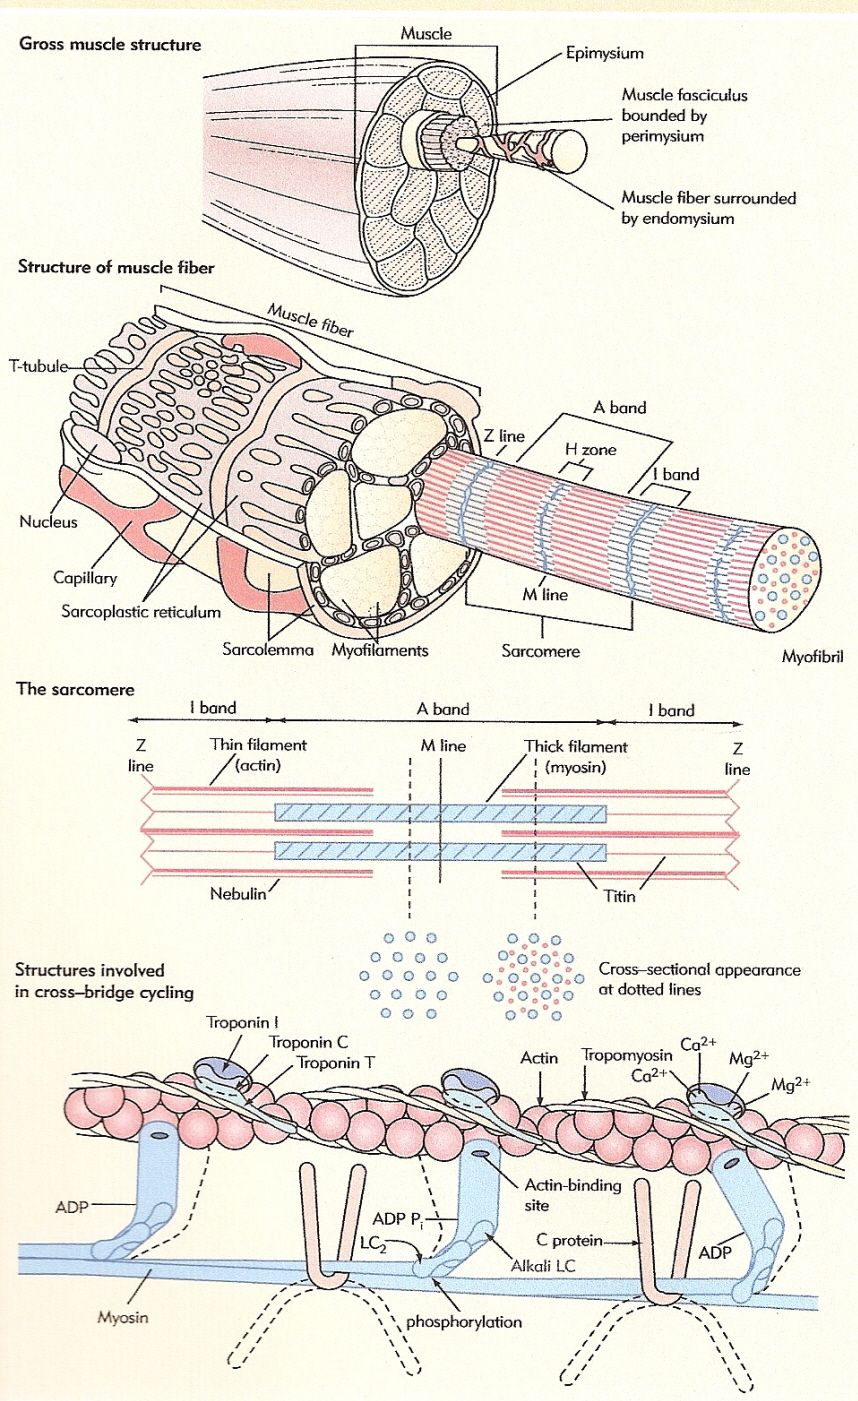 skeletal muscle physiology | Physiology Resorces (awesome) | HNFE ...